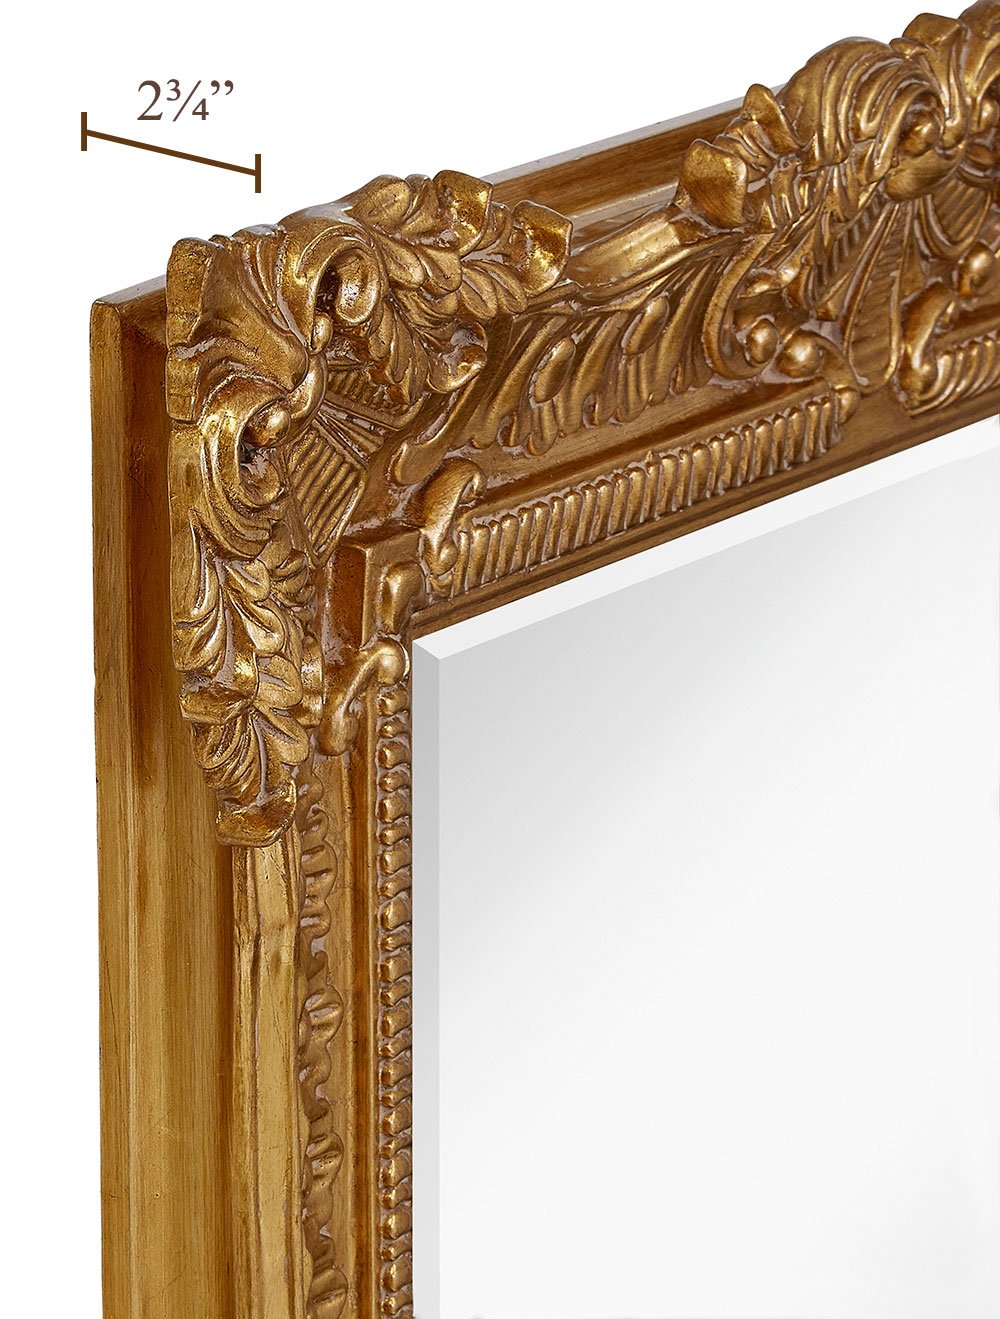 Amazon large ornate gold baroque frame mirror aged luxury amazon large ornate gold baroque frame mirror aged luxury elegant rectangle wall piece vanity bedroom or bathroom hangs horizontal or amipublicfo Gallery